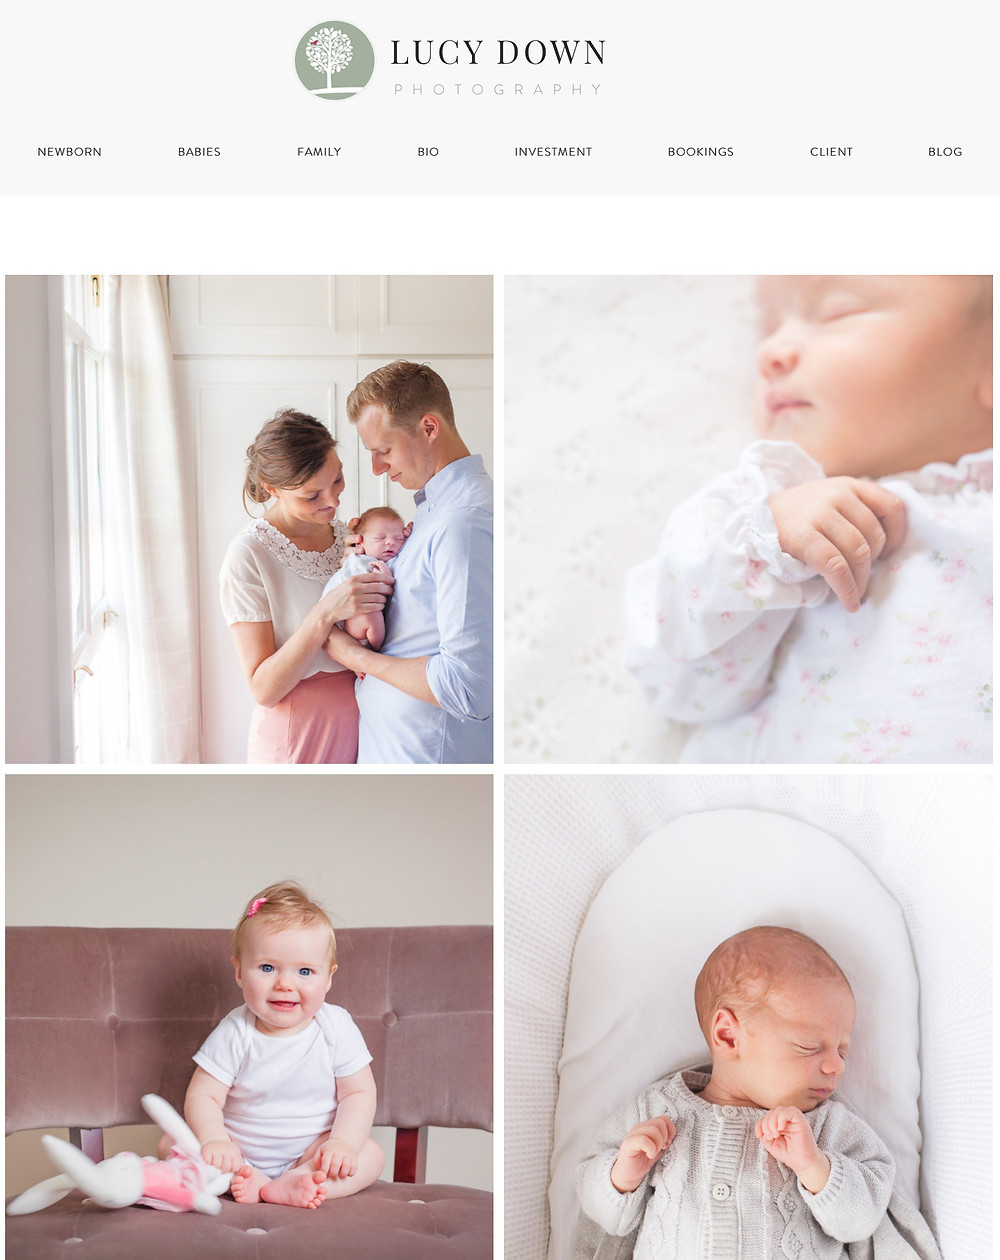 Newborn Photographer Surrey | Baby Photographer Surrey | Website Relaunch